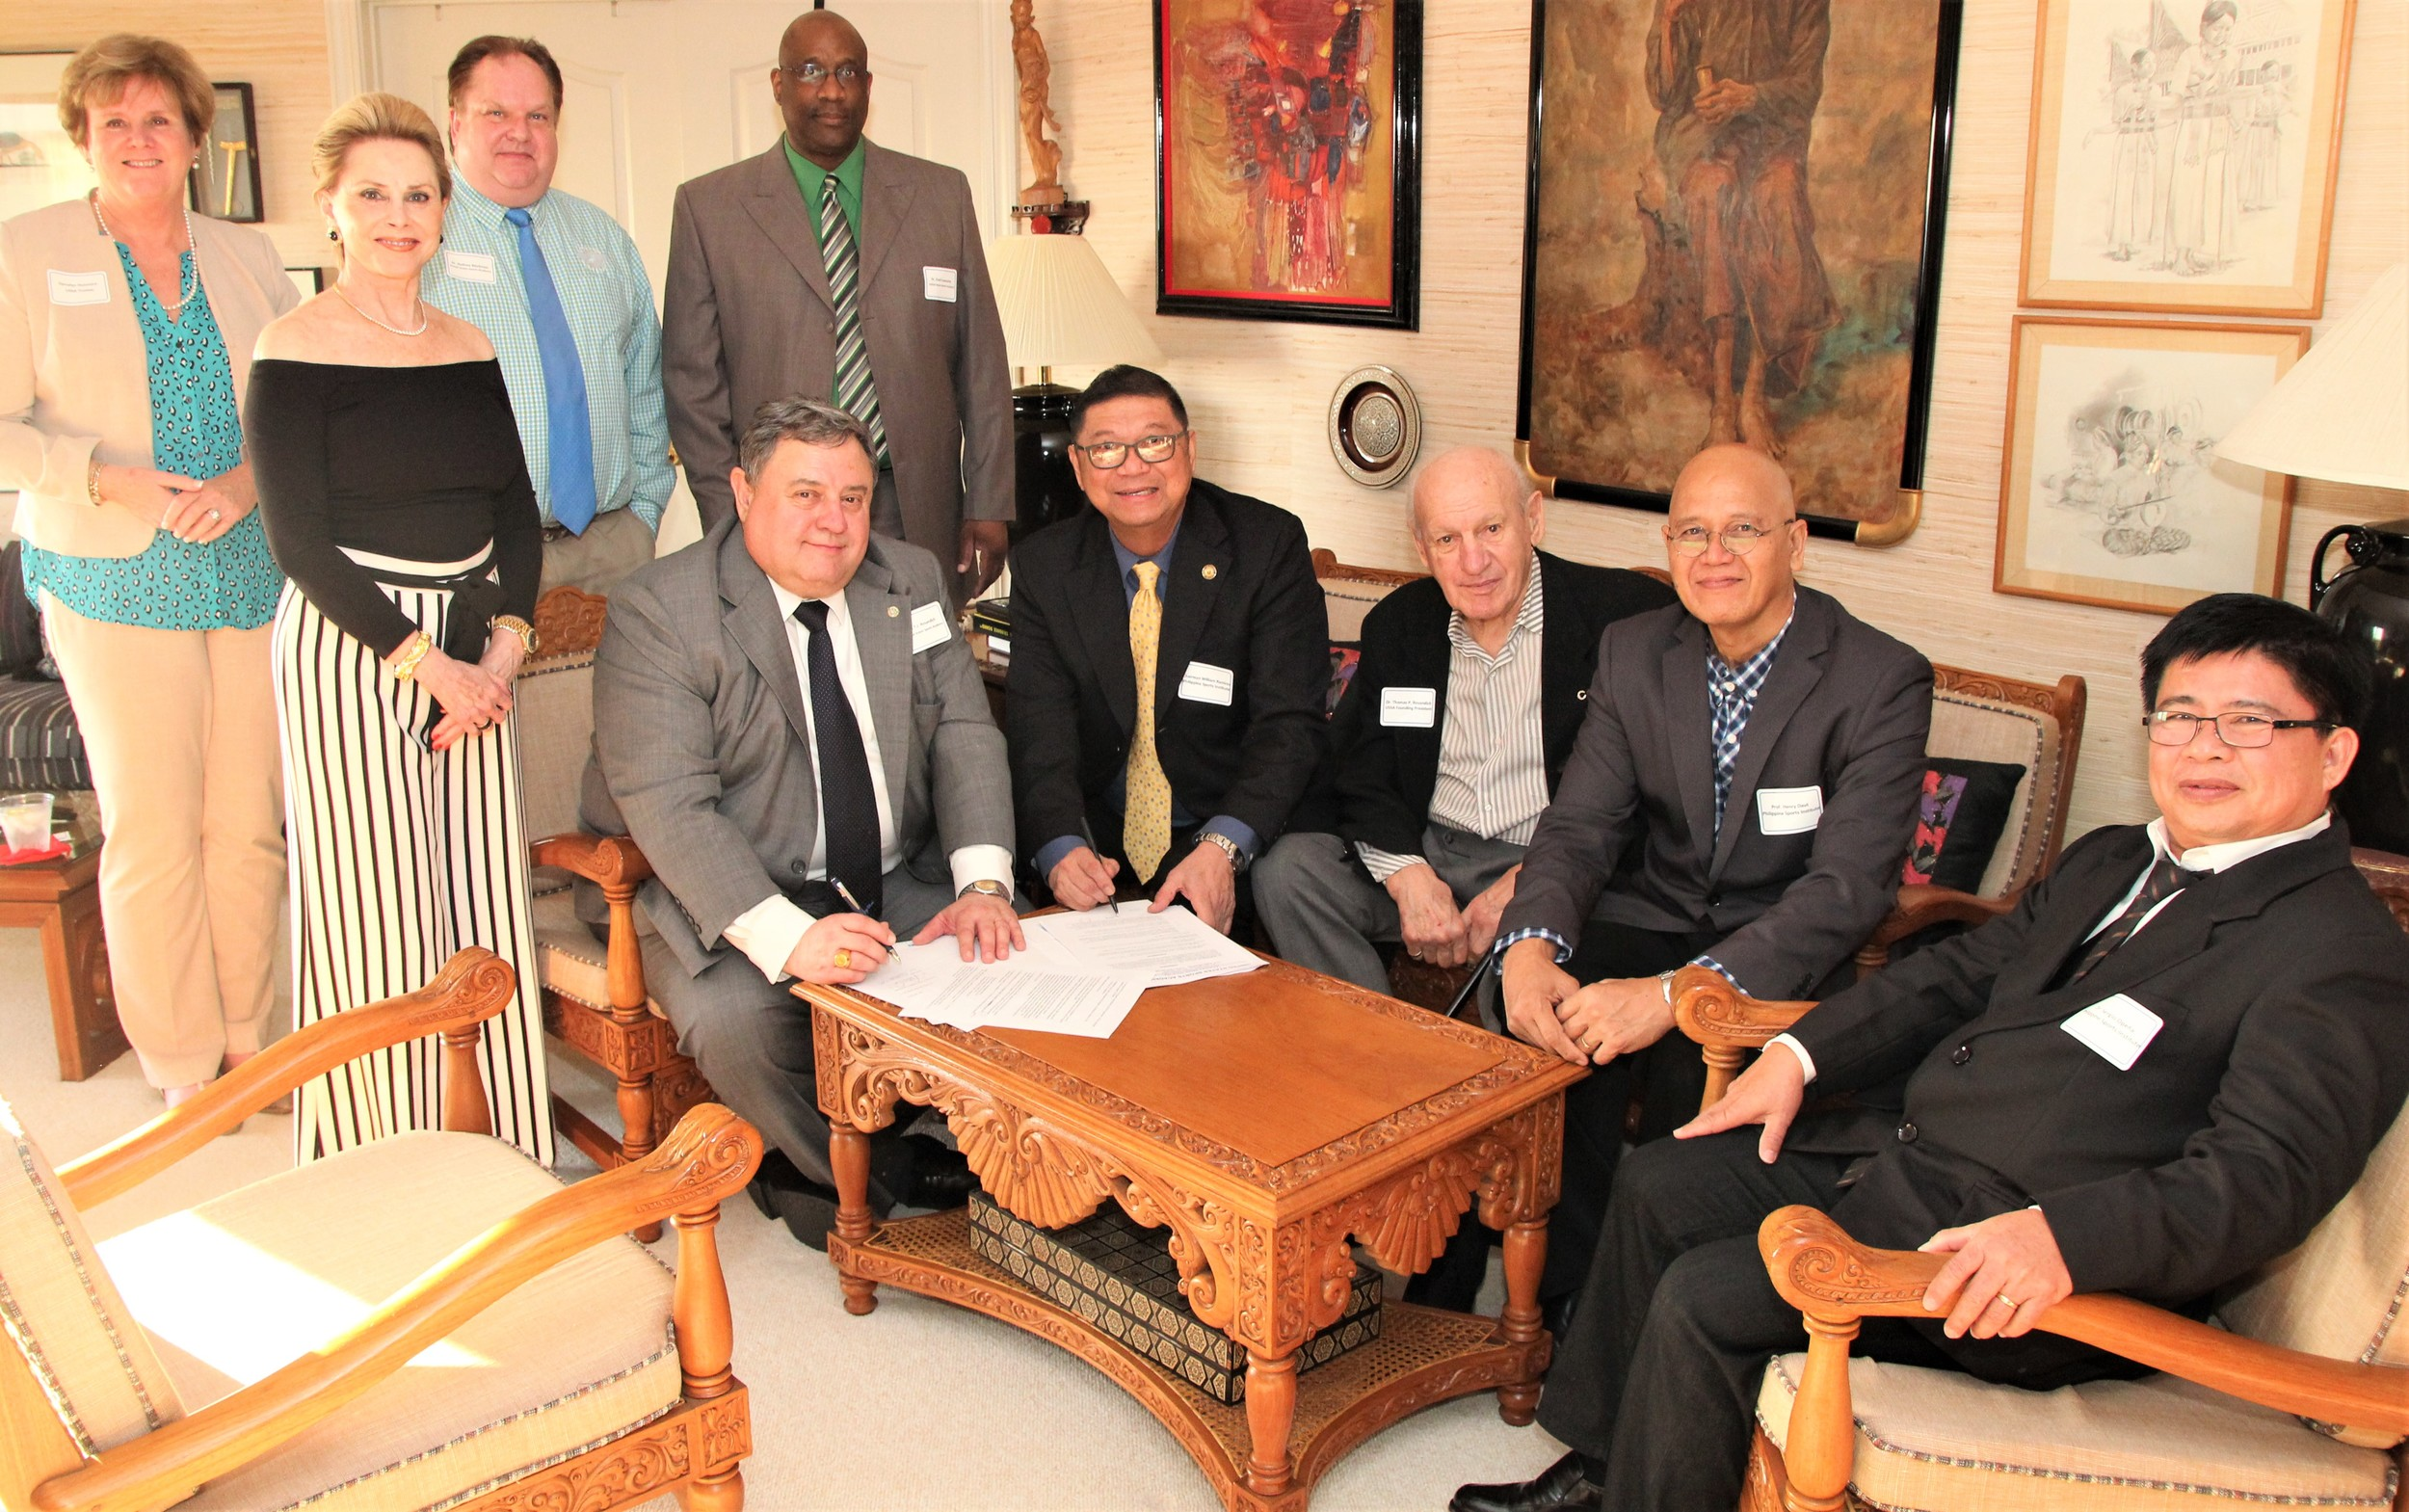 "United States Sports Academy President and CEO Dr. T.J. Rosandich, seated at left, signed an agreement with Philippine Sports Commission (PSC) Chair William ""Butch"" Ramirez, seated second from left, to help enhance that country's national sport programs at all levels. Also shown are, standing from left: Academy Trustees Darrelyn Dunmore and Susan McCollough, Academy Chair of Recreation Management Dr. Rodney Blackman and Interim Dean of Academic Affairs and Director of Doctoral Studies Dr. Fred Cromartie. Seated from left are Rosandich, Ramirez, Academy Founding President Dr. Thomas P. Rosandich, Philippine Sports Institute deputy training director Henry Daut and PSC Director of Operations Sergio Opena."